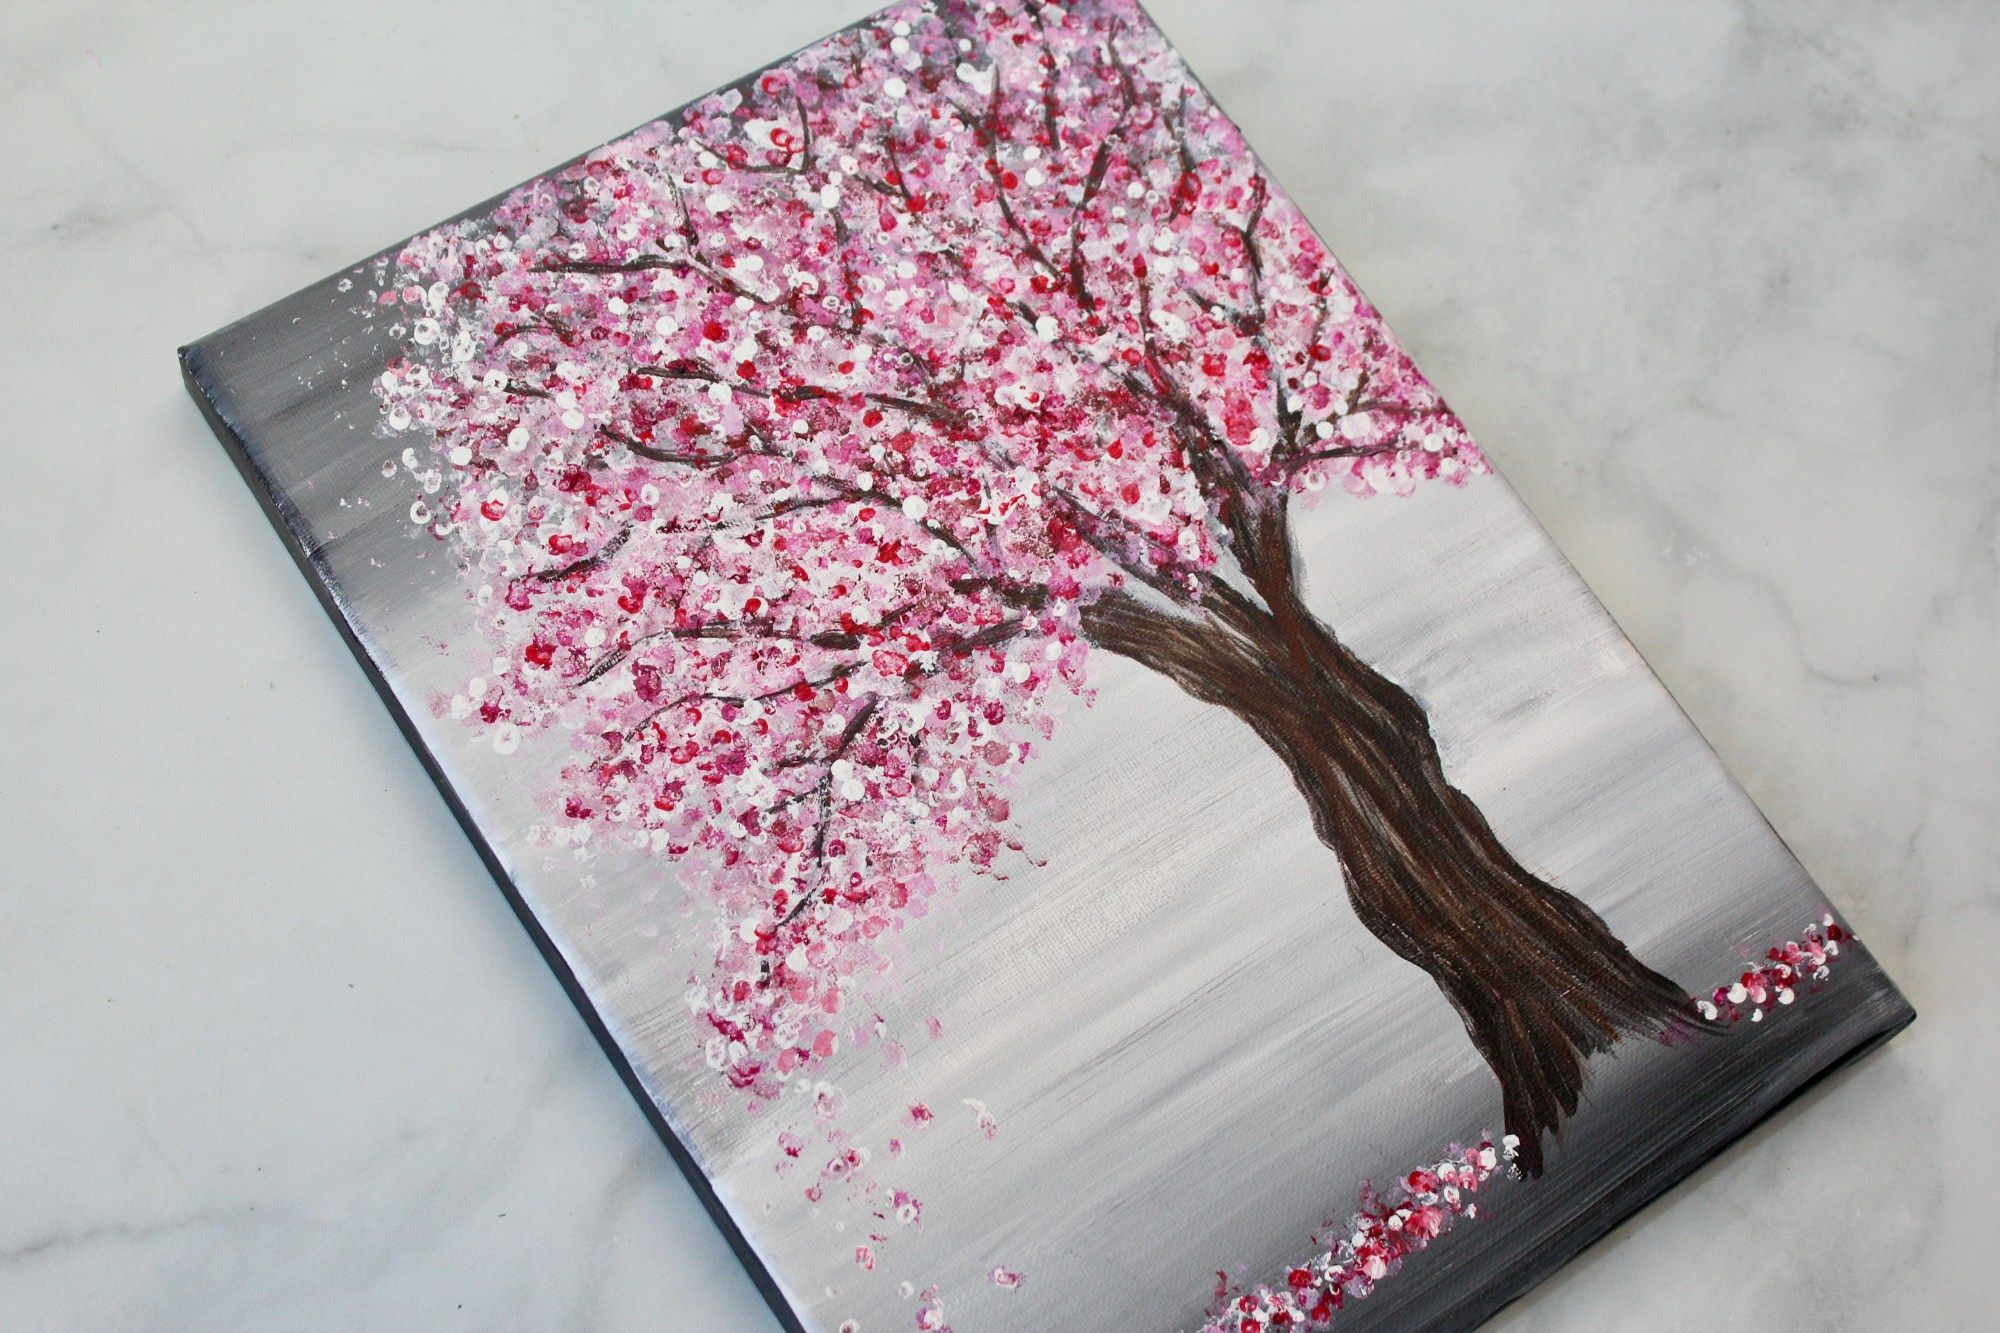 Painting A Cherry Blossom Tree With Acrylics And Cotton Swabs Cherry Blossom Art Cherry Blossom Painting Acrylic Cherry Blossom Painting